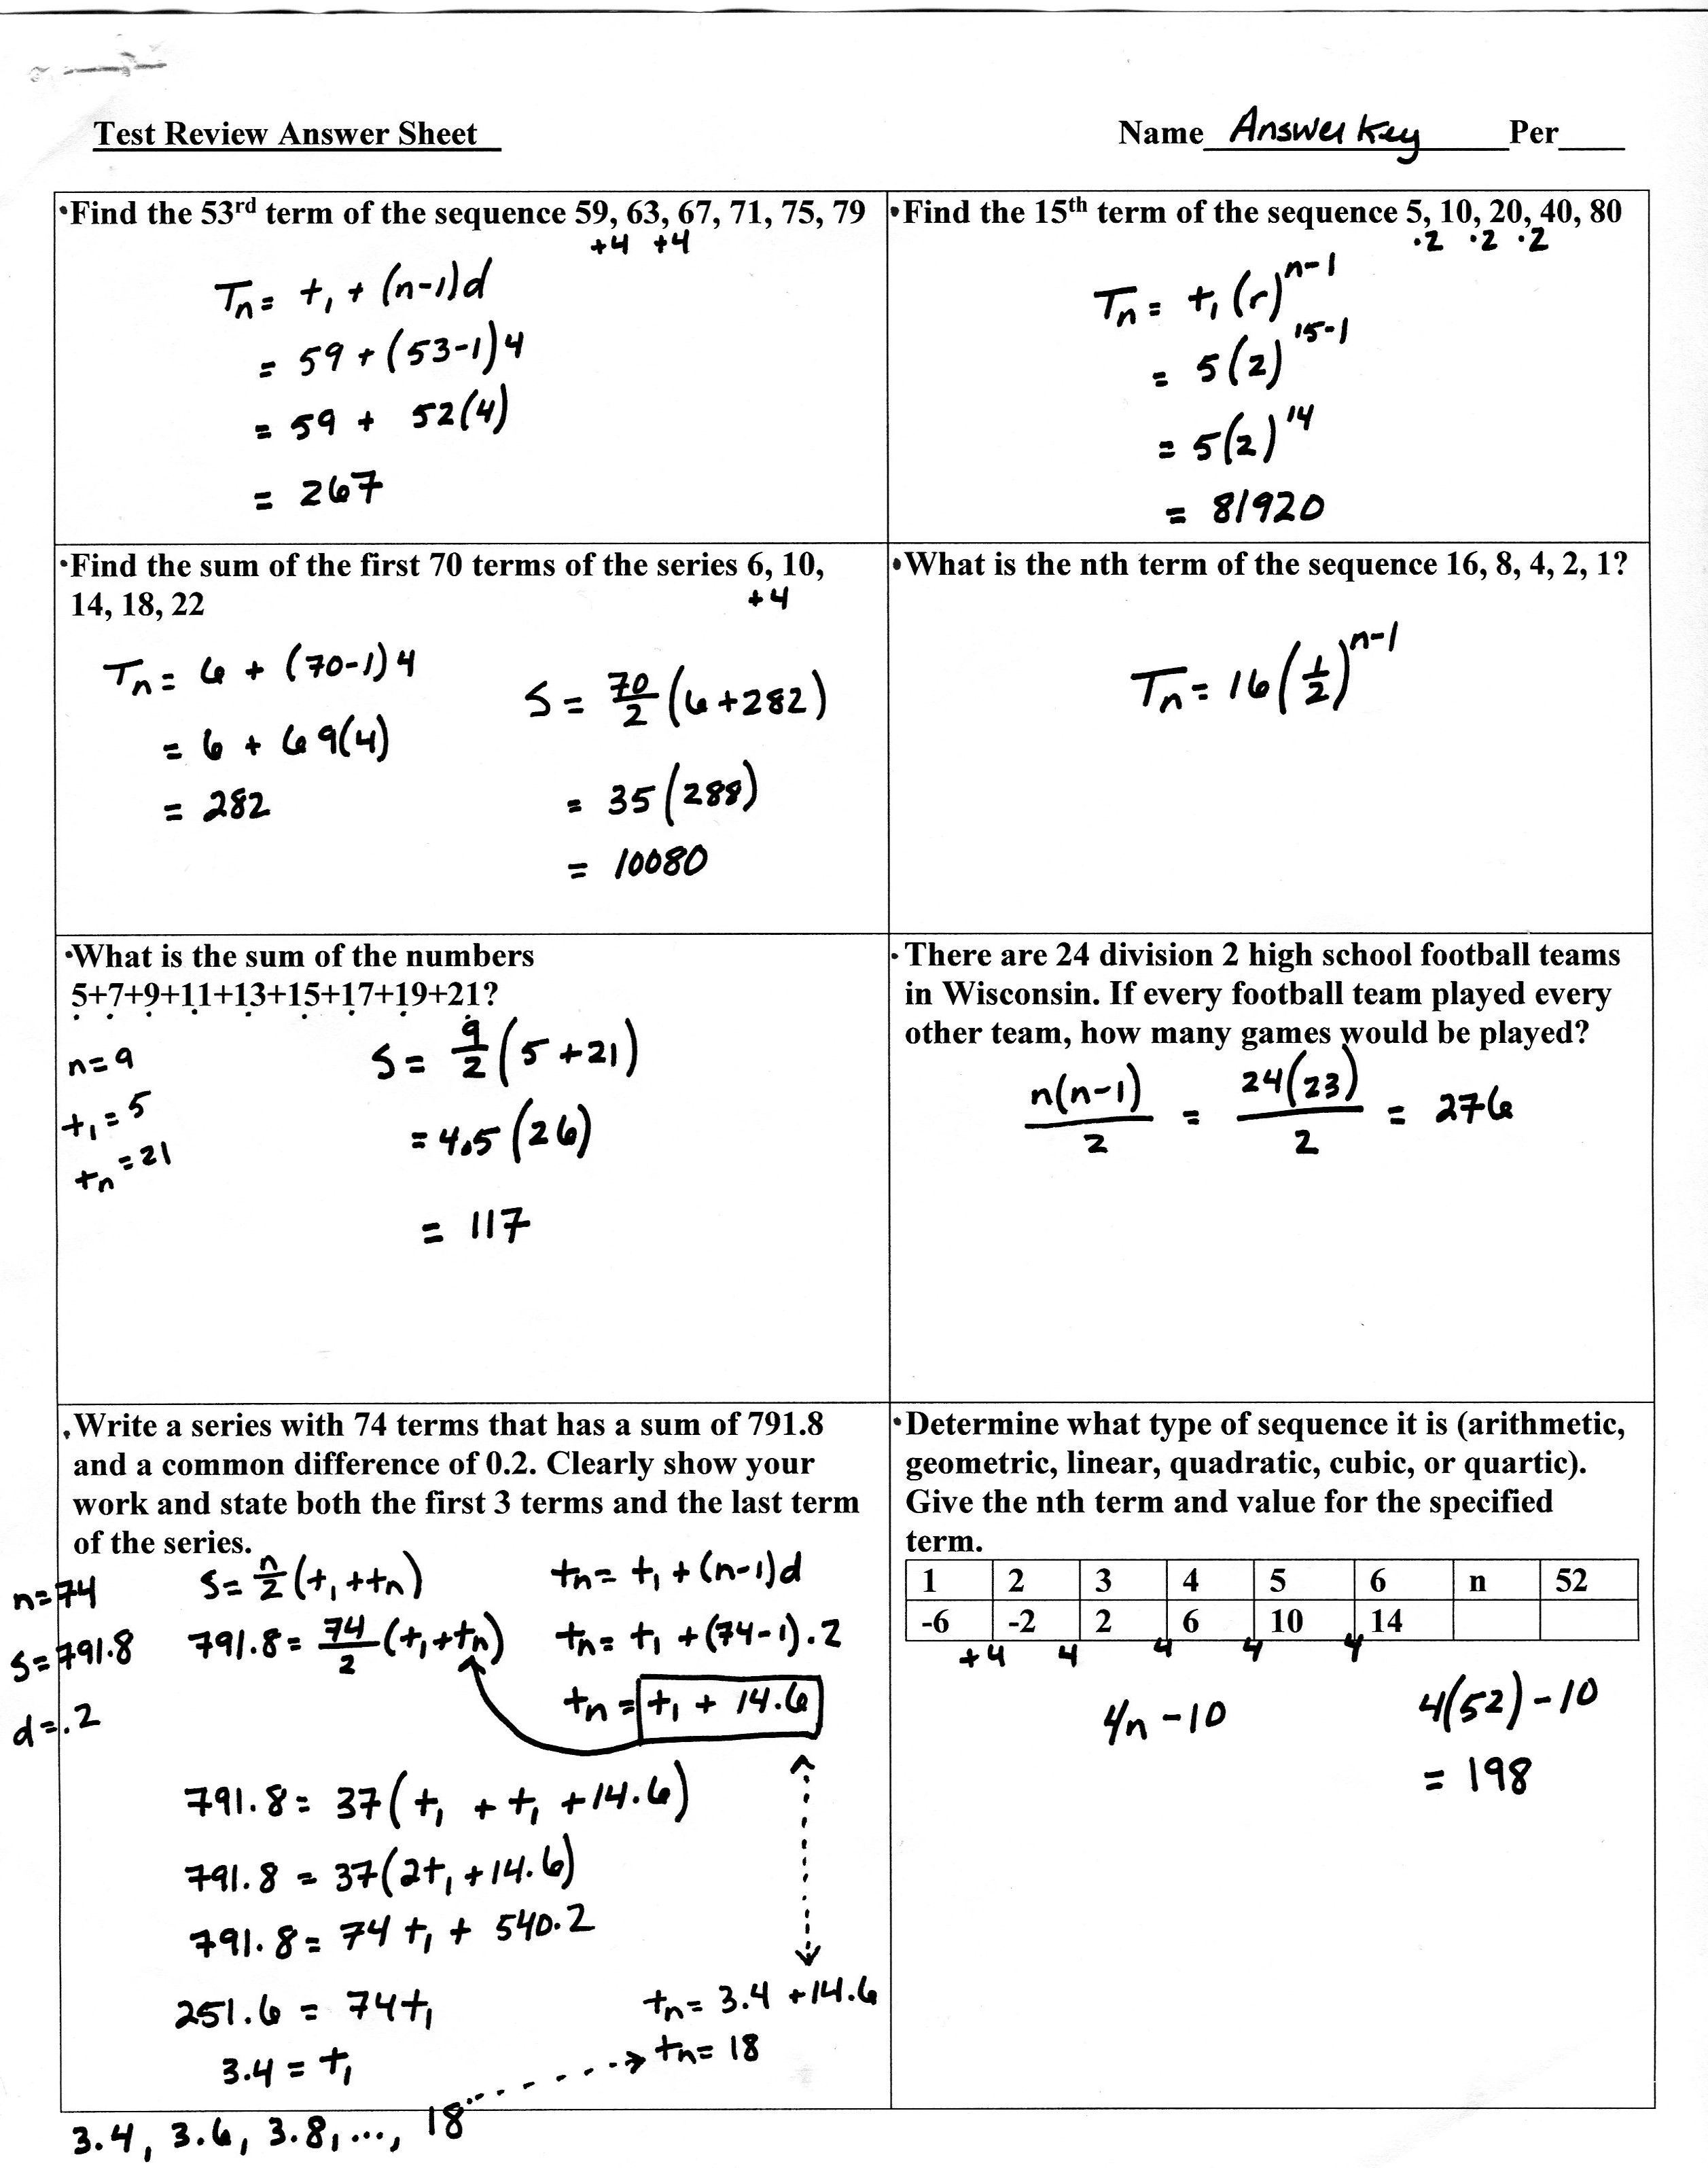 Geometric Sequence And Series Worksheet Answer Key